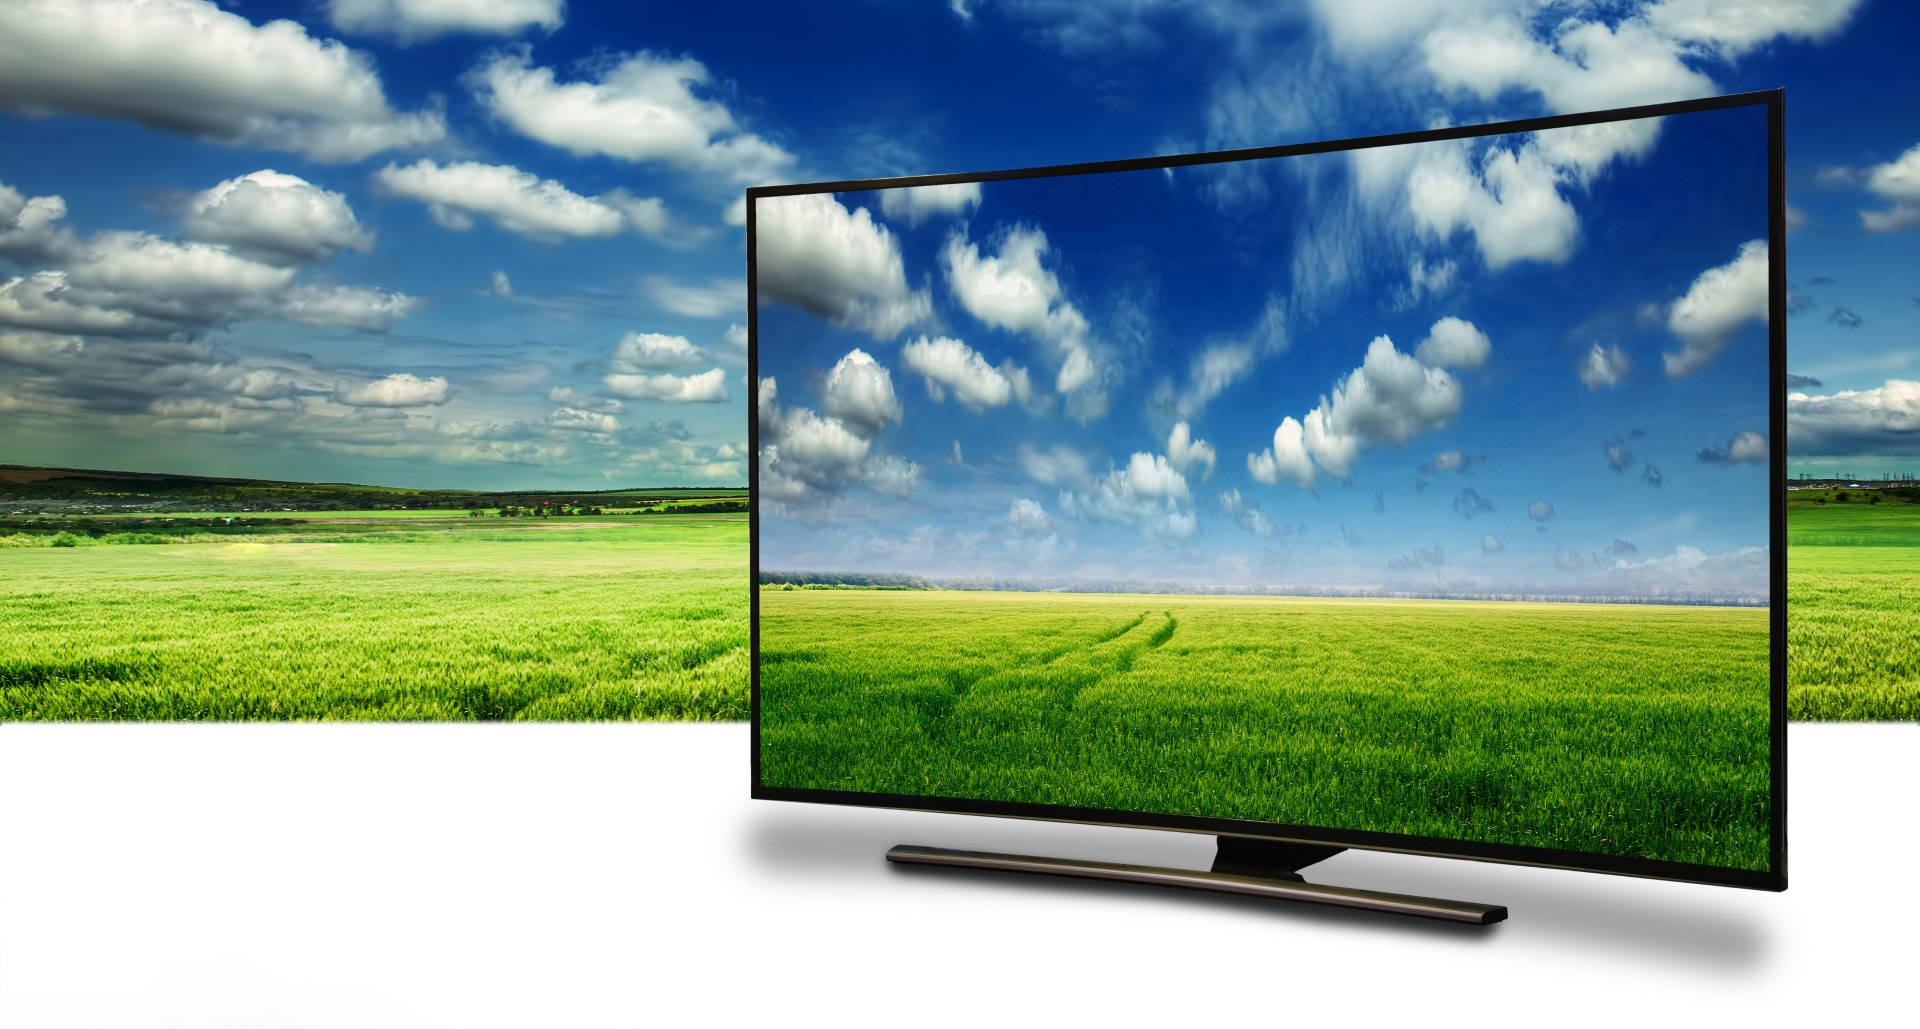 An image related to Best 3D WebOS Smart TVs